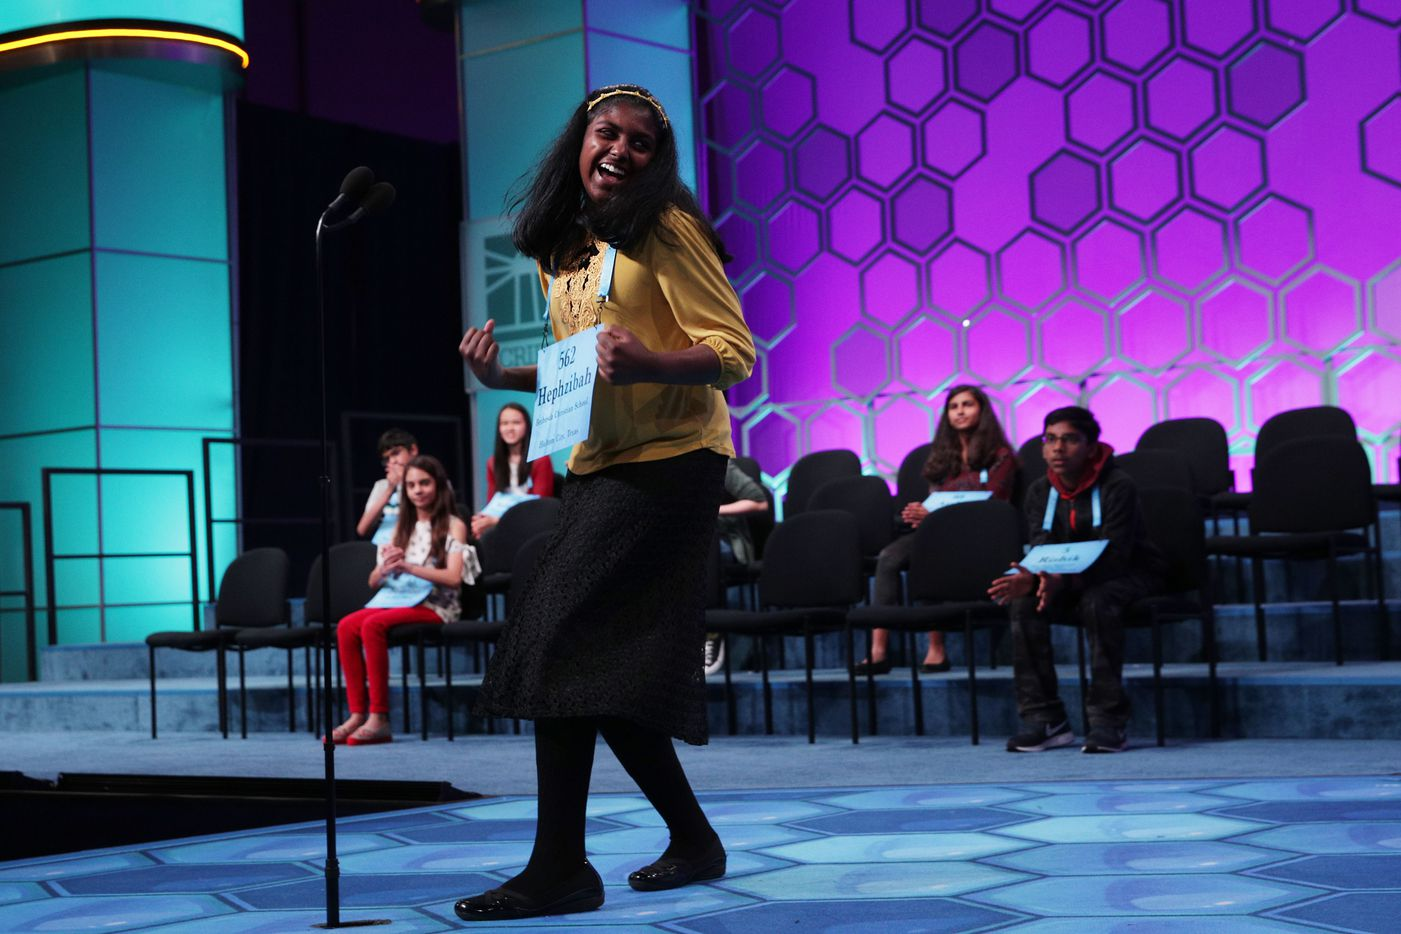 """NATIONAL HARBOR, MARYLAND - MAY 30: Hephzibah Sujoe of Fort Worth, Texas, celebrates after she correctly spelled the word """"yponomeutid"""" during round eight of the Scripps National Spelling Bee at the Gaylord National Resort & Convention Center May 30, 2019 in National Harbor, Maryland. Students from across the country and around the world compete in the spelling competition, which started in 1925. (Photo by Alex Wong/Getty Images)"""